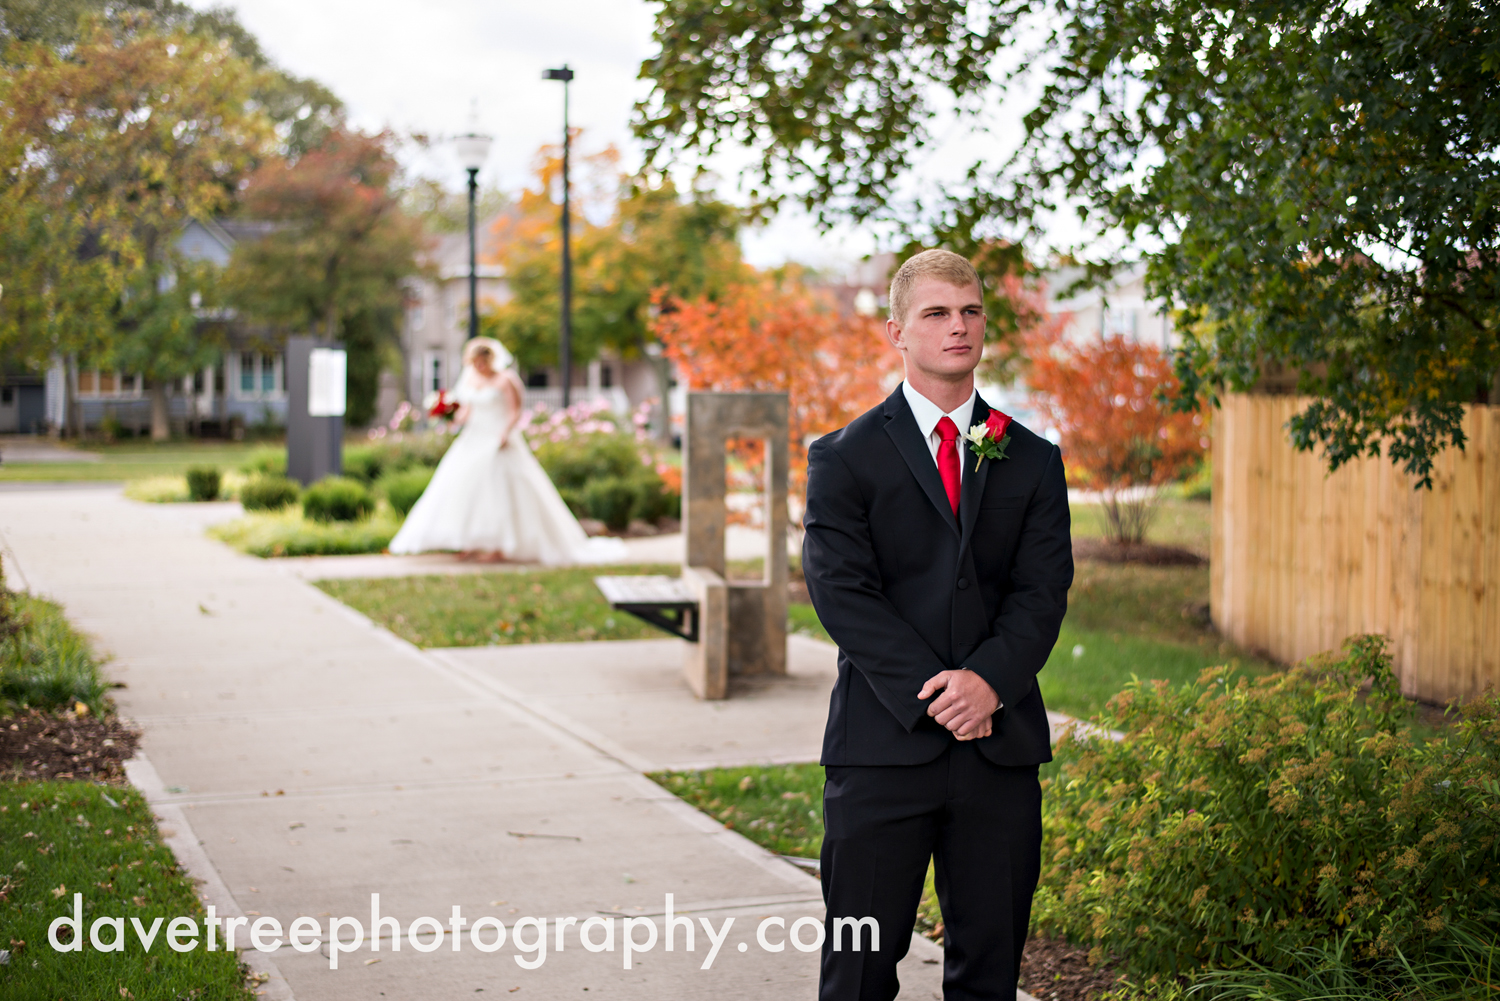 holland_wedding_photographer_79.jpg